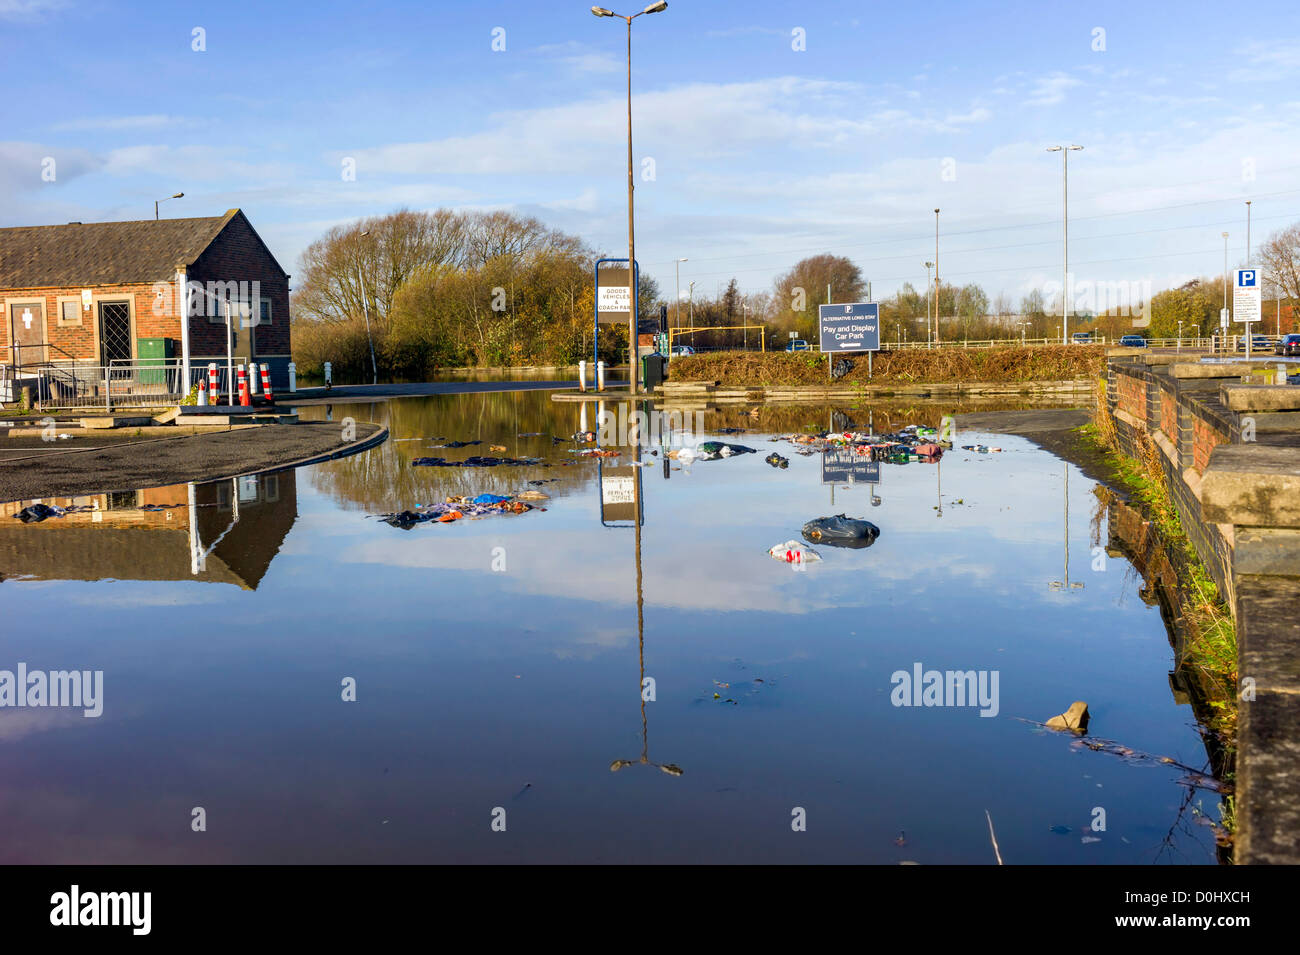 After days of rainfall the car park is closed, scenes of flooding, floating debris, abandoned cars await their owners - Stock Image